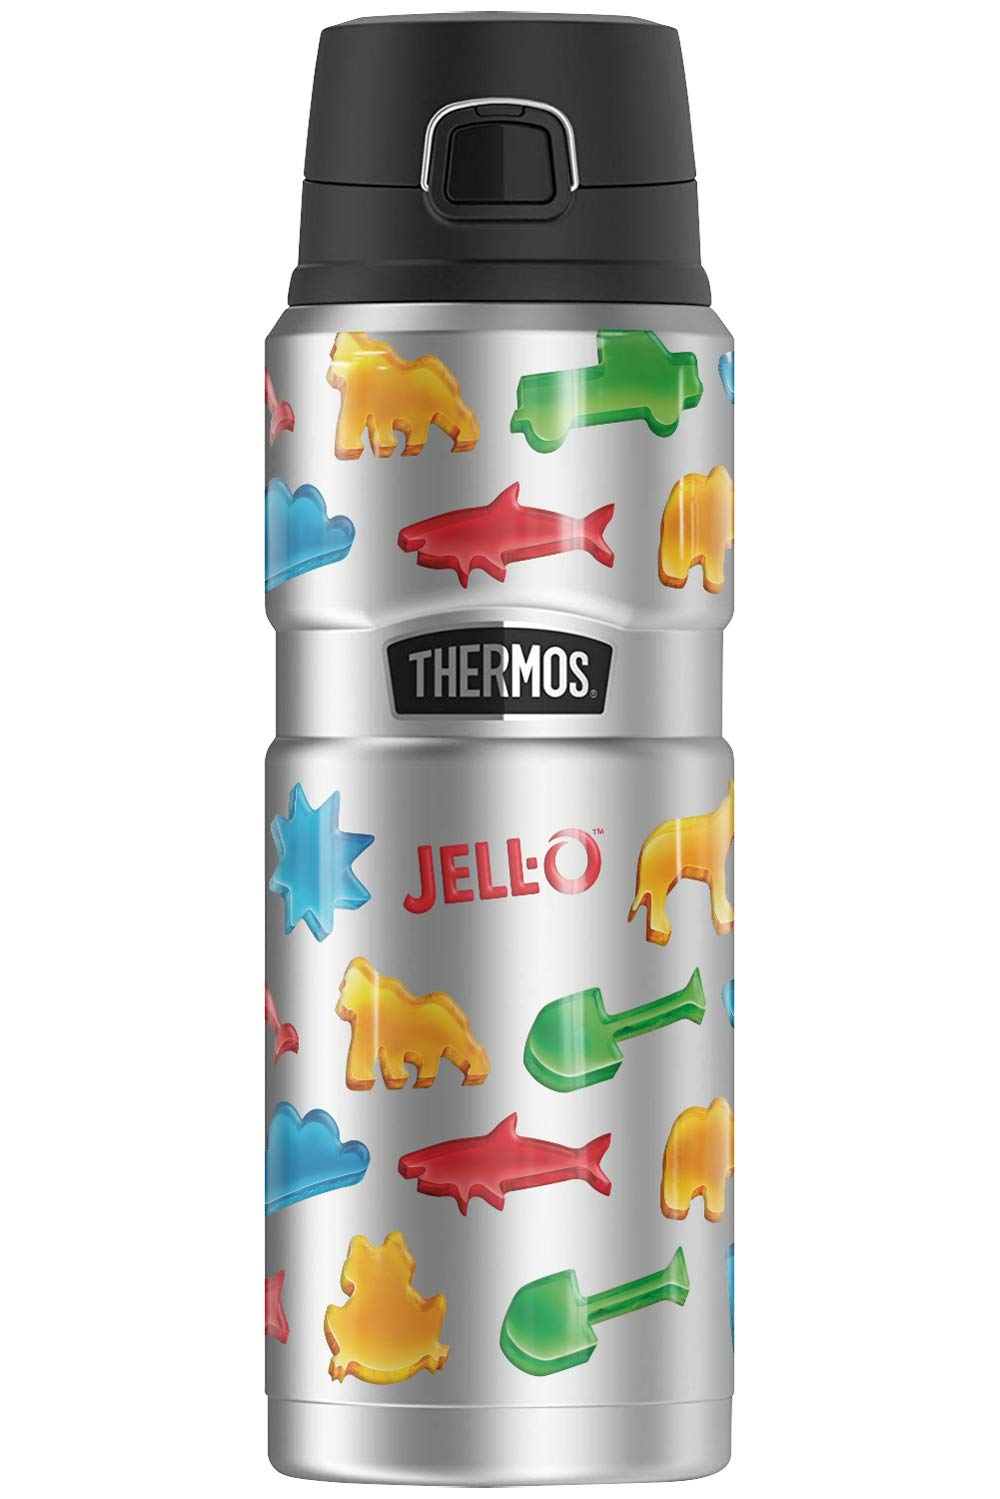 Jello Jello Jigglers Pattern THERMOS STAINLESS KING Stainless Steel Drink Bottle, Vacuum insulated & Double Wall, 24oz